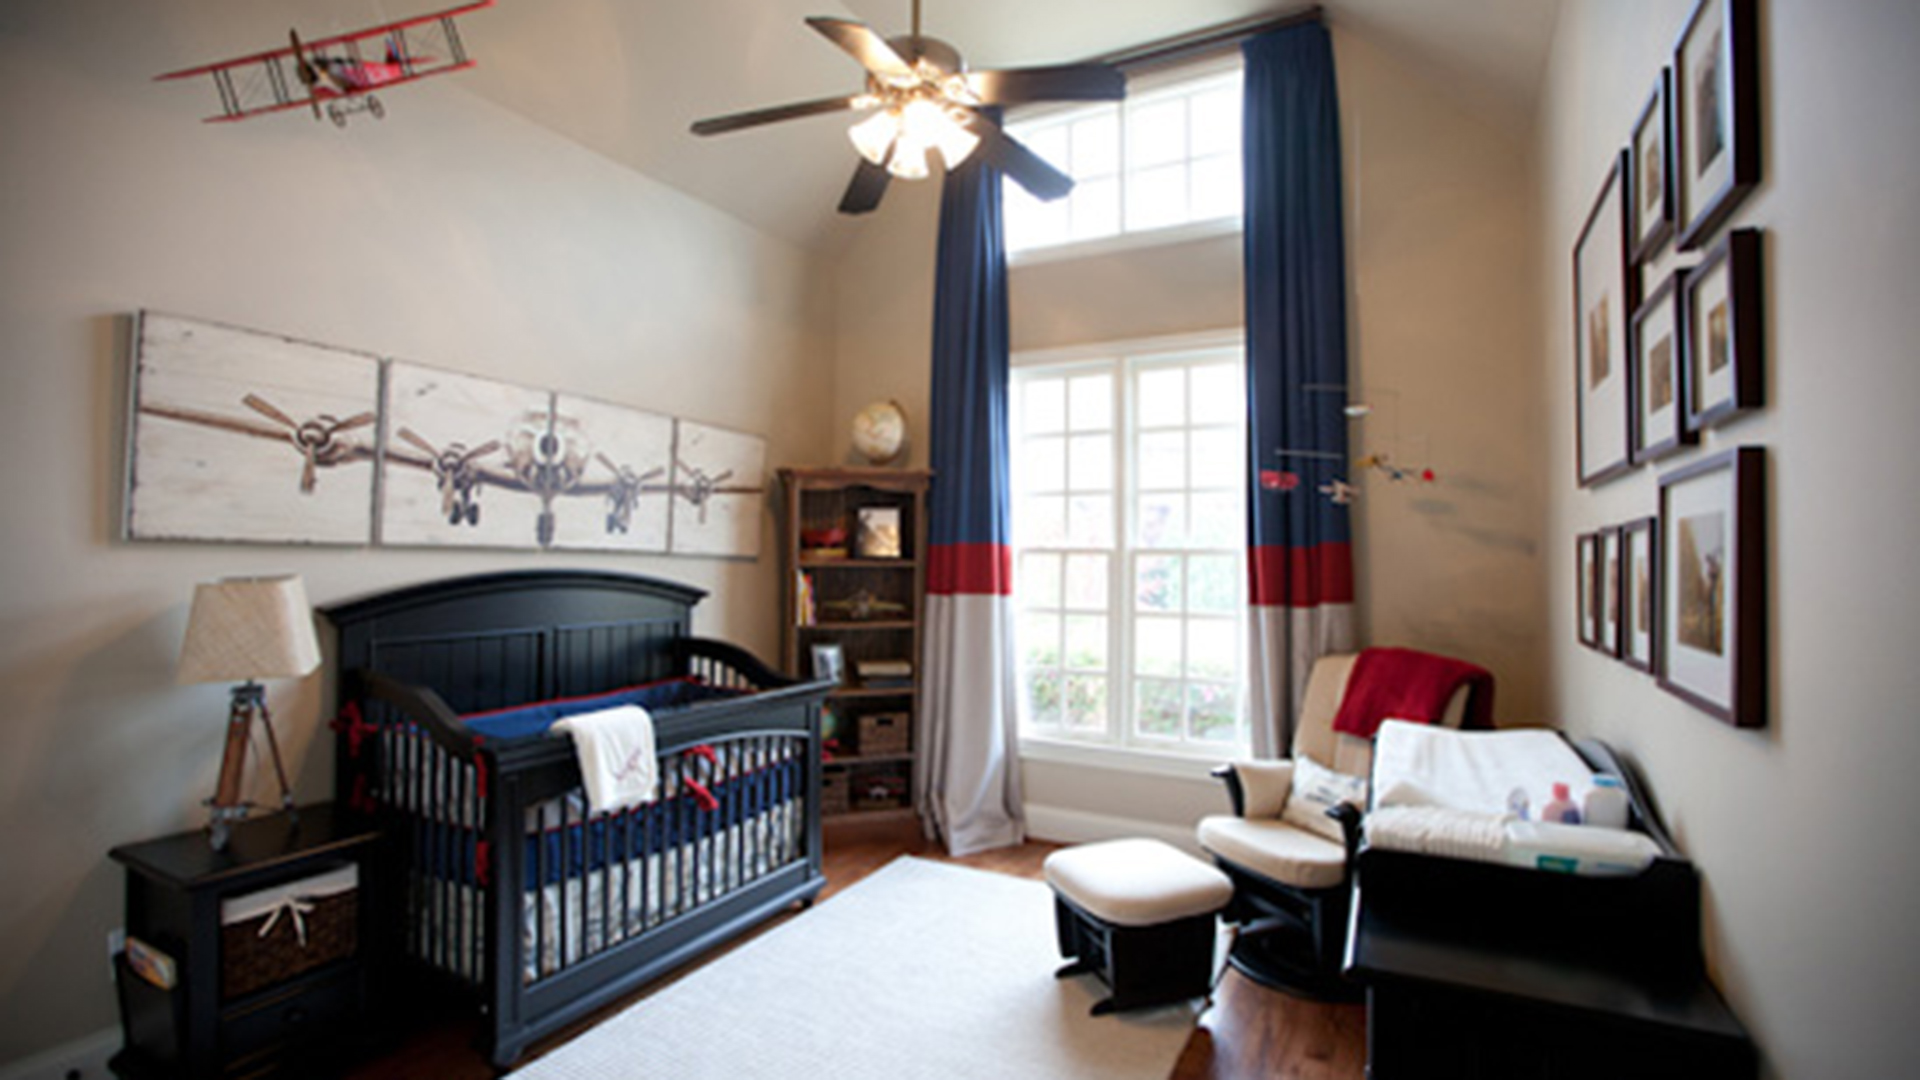 Boy Nursery Ideas From Pinterest